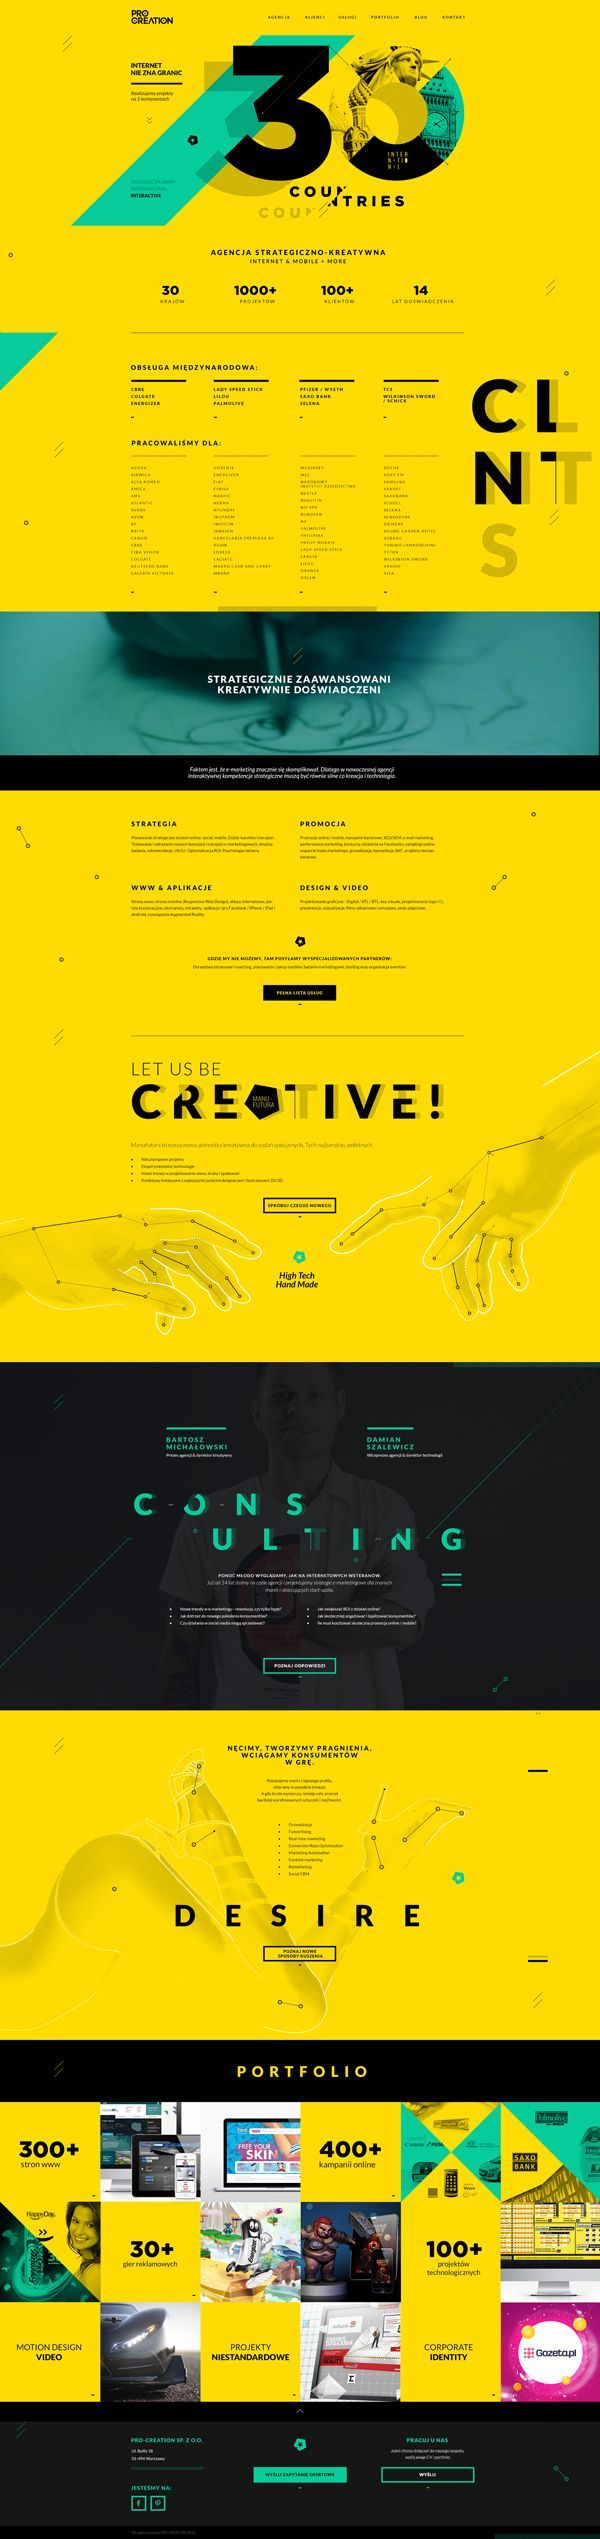 Pro Creation Website on Behance: